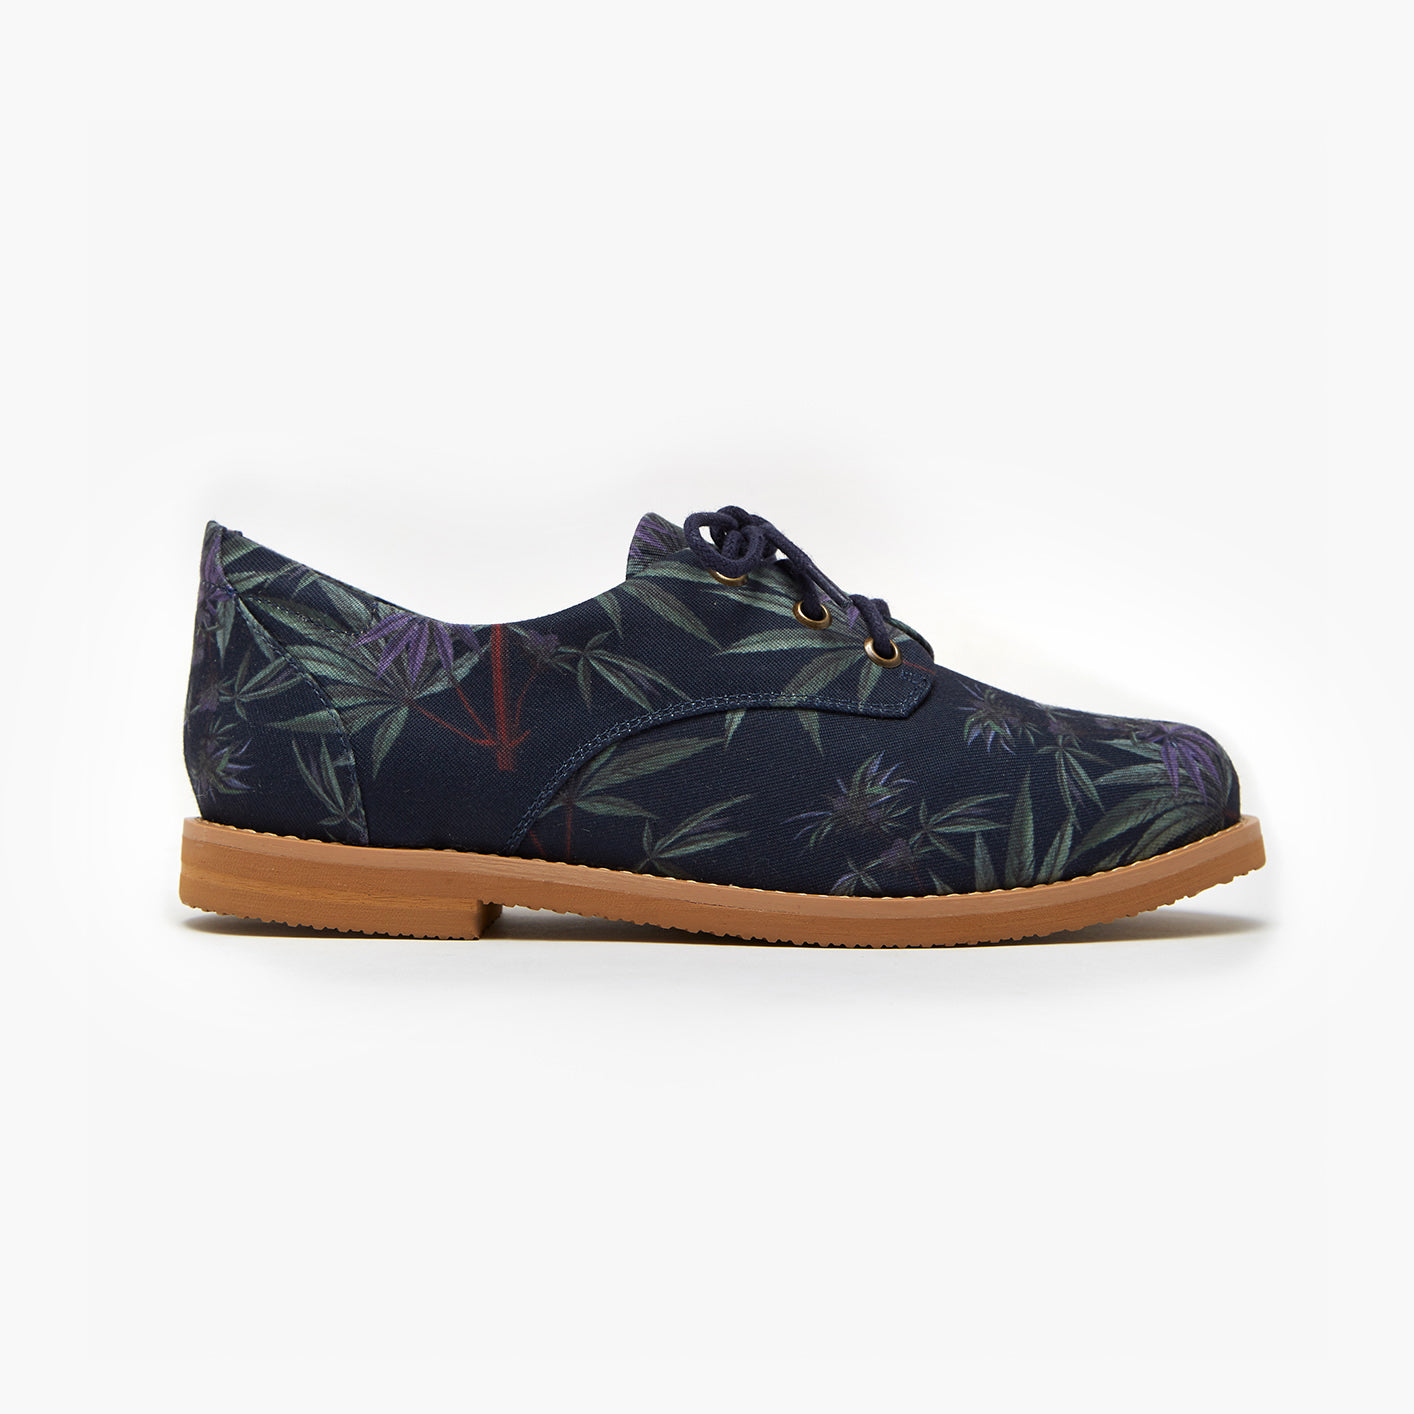 SATIVA OXFORD - Insecta Shoes Brasil